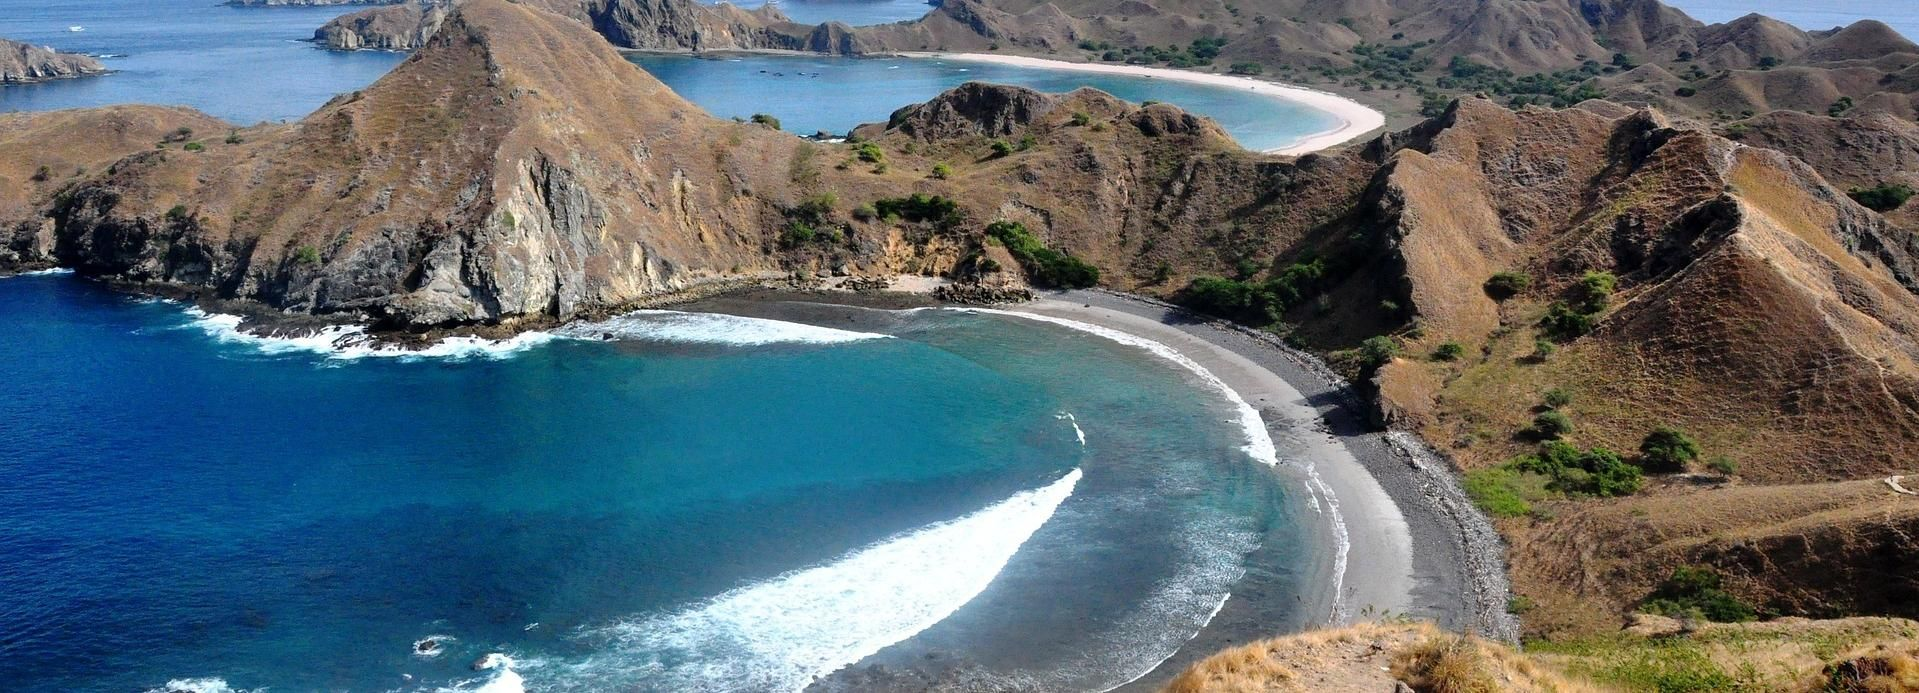 Komodo Island: Private 4–Day Trip with Phinisi Boat & Hotel